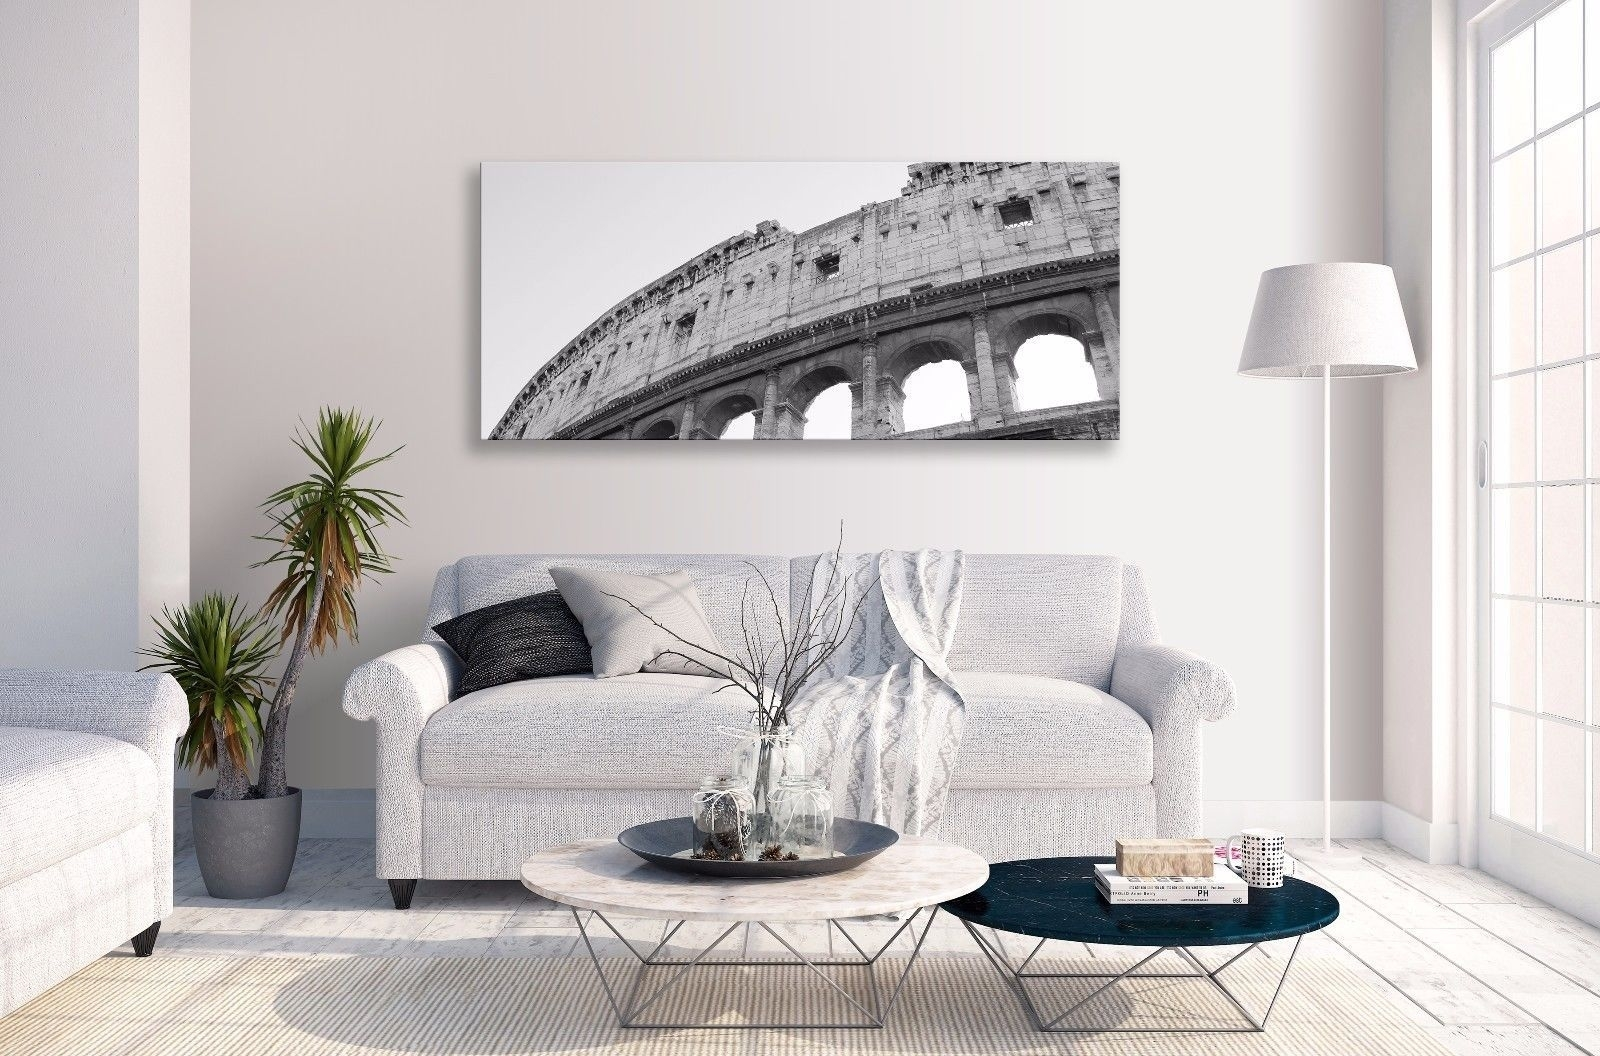 Colosseum Rome Abstract Architecture Grey Panorama Canvas Wall Art In 2018 Canvas Wall Art Of Rome (Gallery 15 of 15)